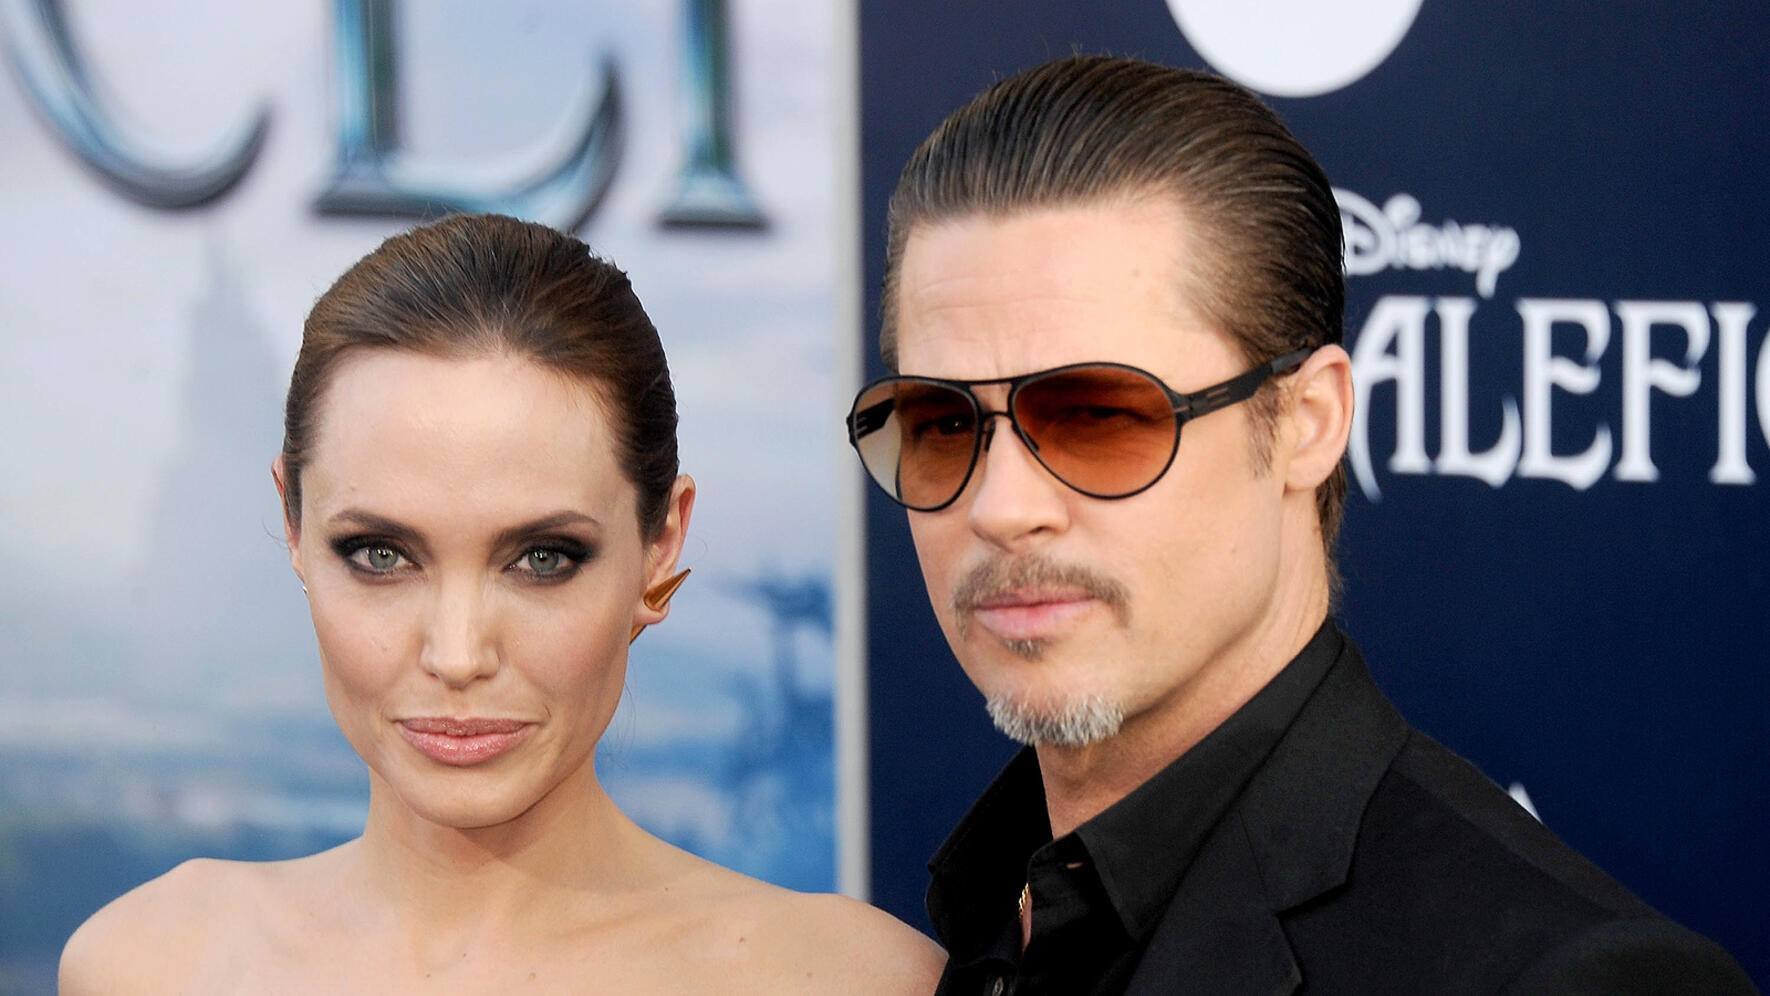 Gewalt-Attacke auf Brad Pitt an Maleficent-Premiere in Los Angeles